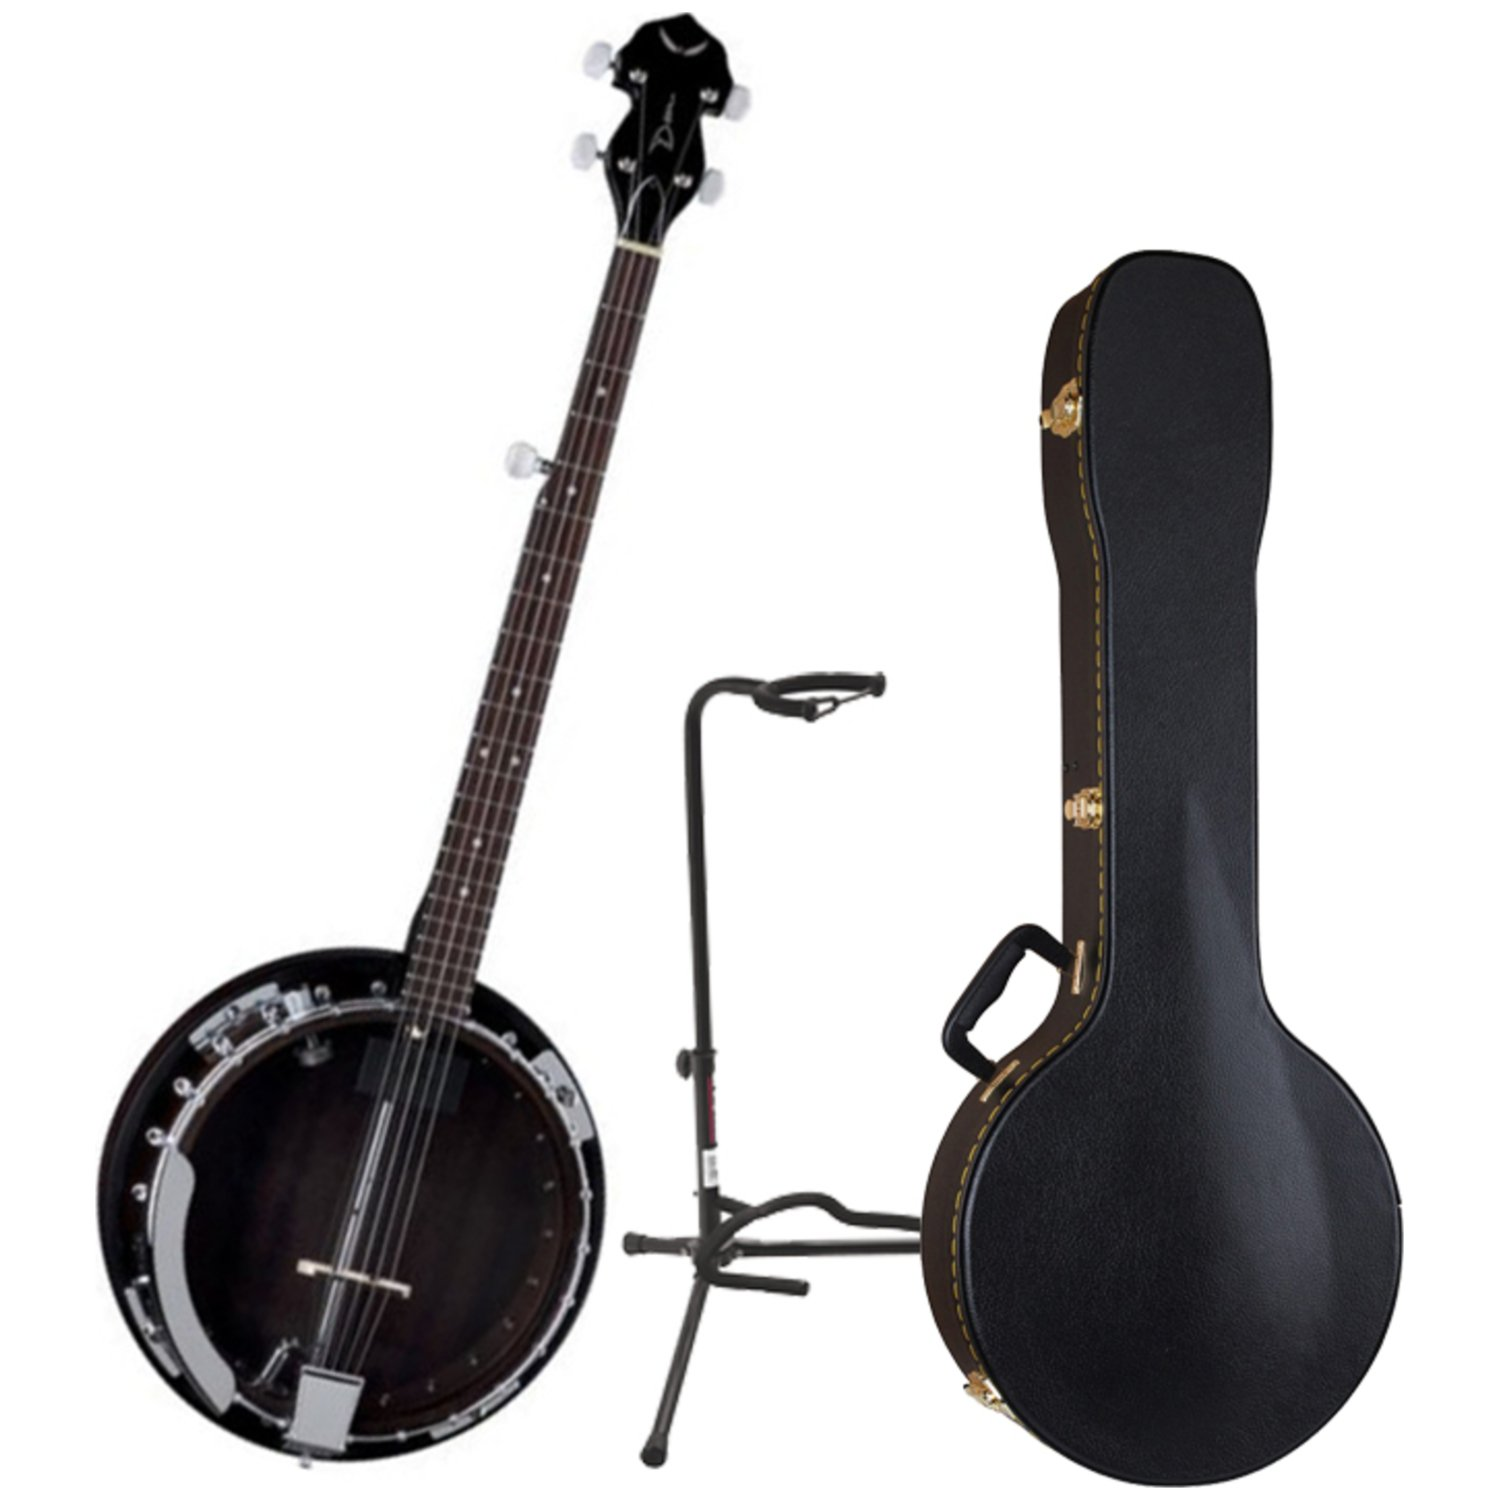 Dean BW2E Backwoods Electric Banjo w/ Case and Stand by Dean Guitars